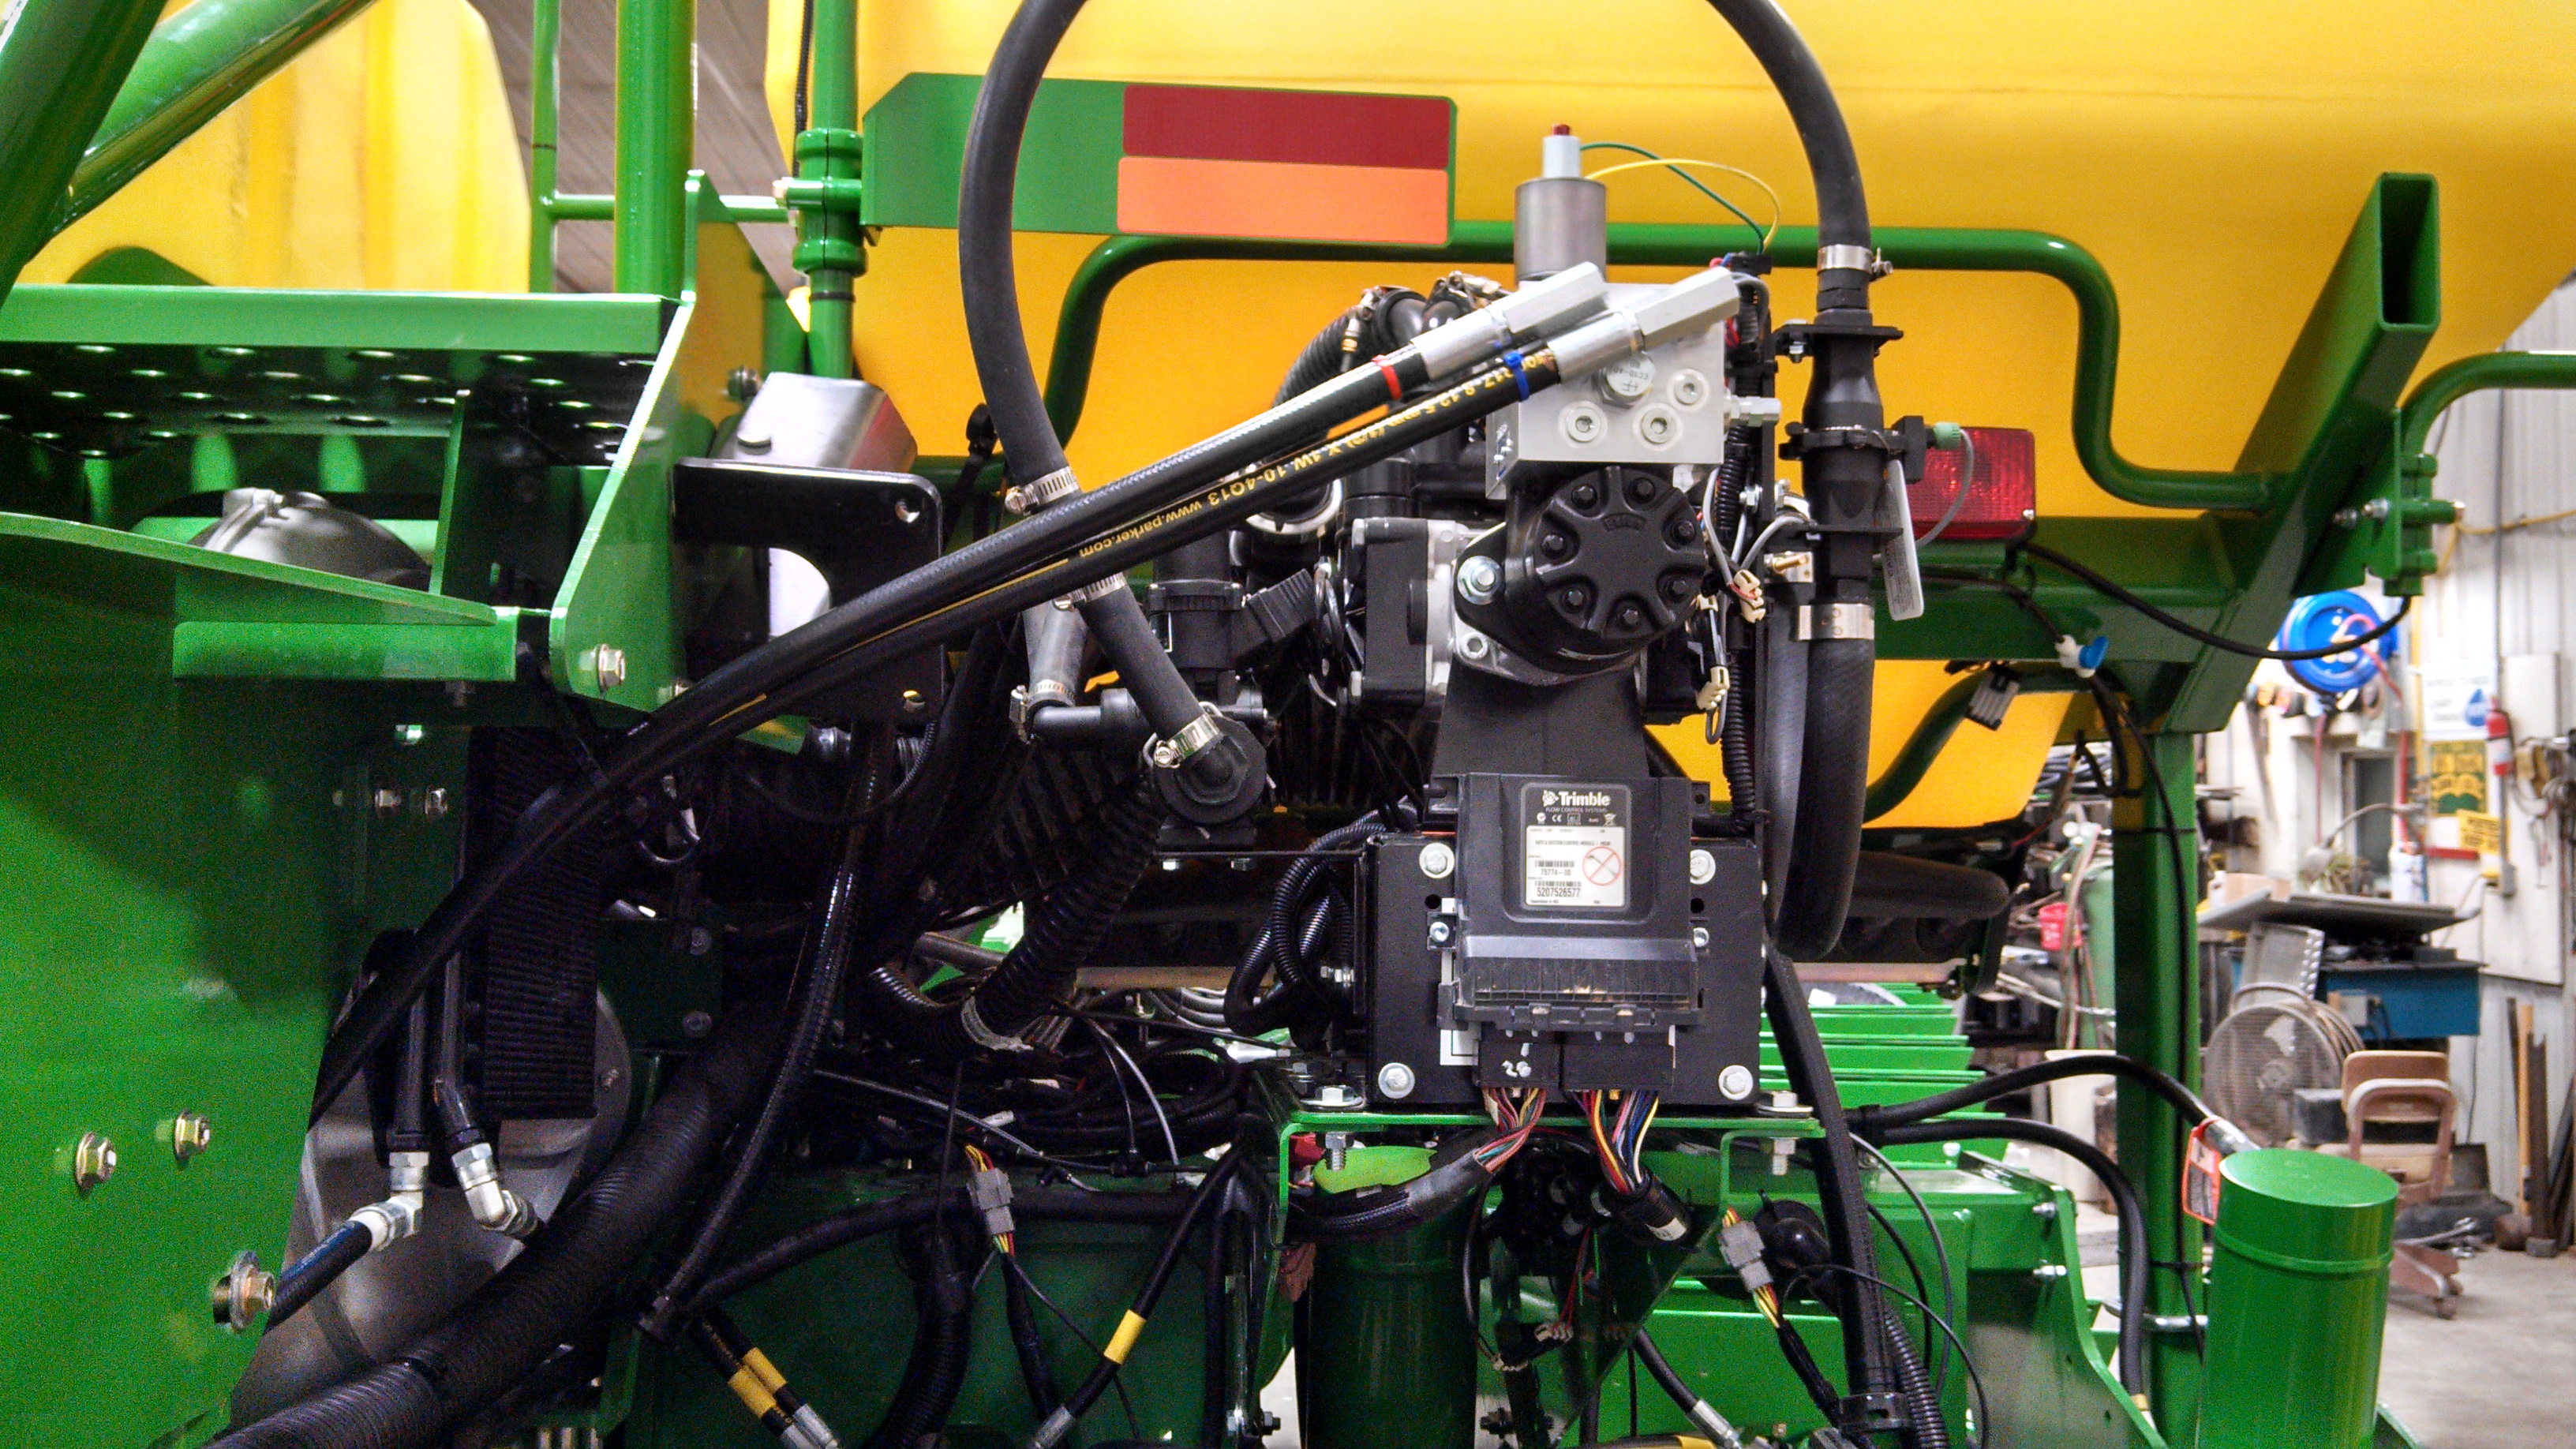 GX5 on rear of planter